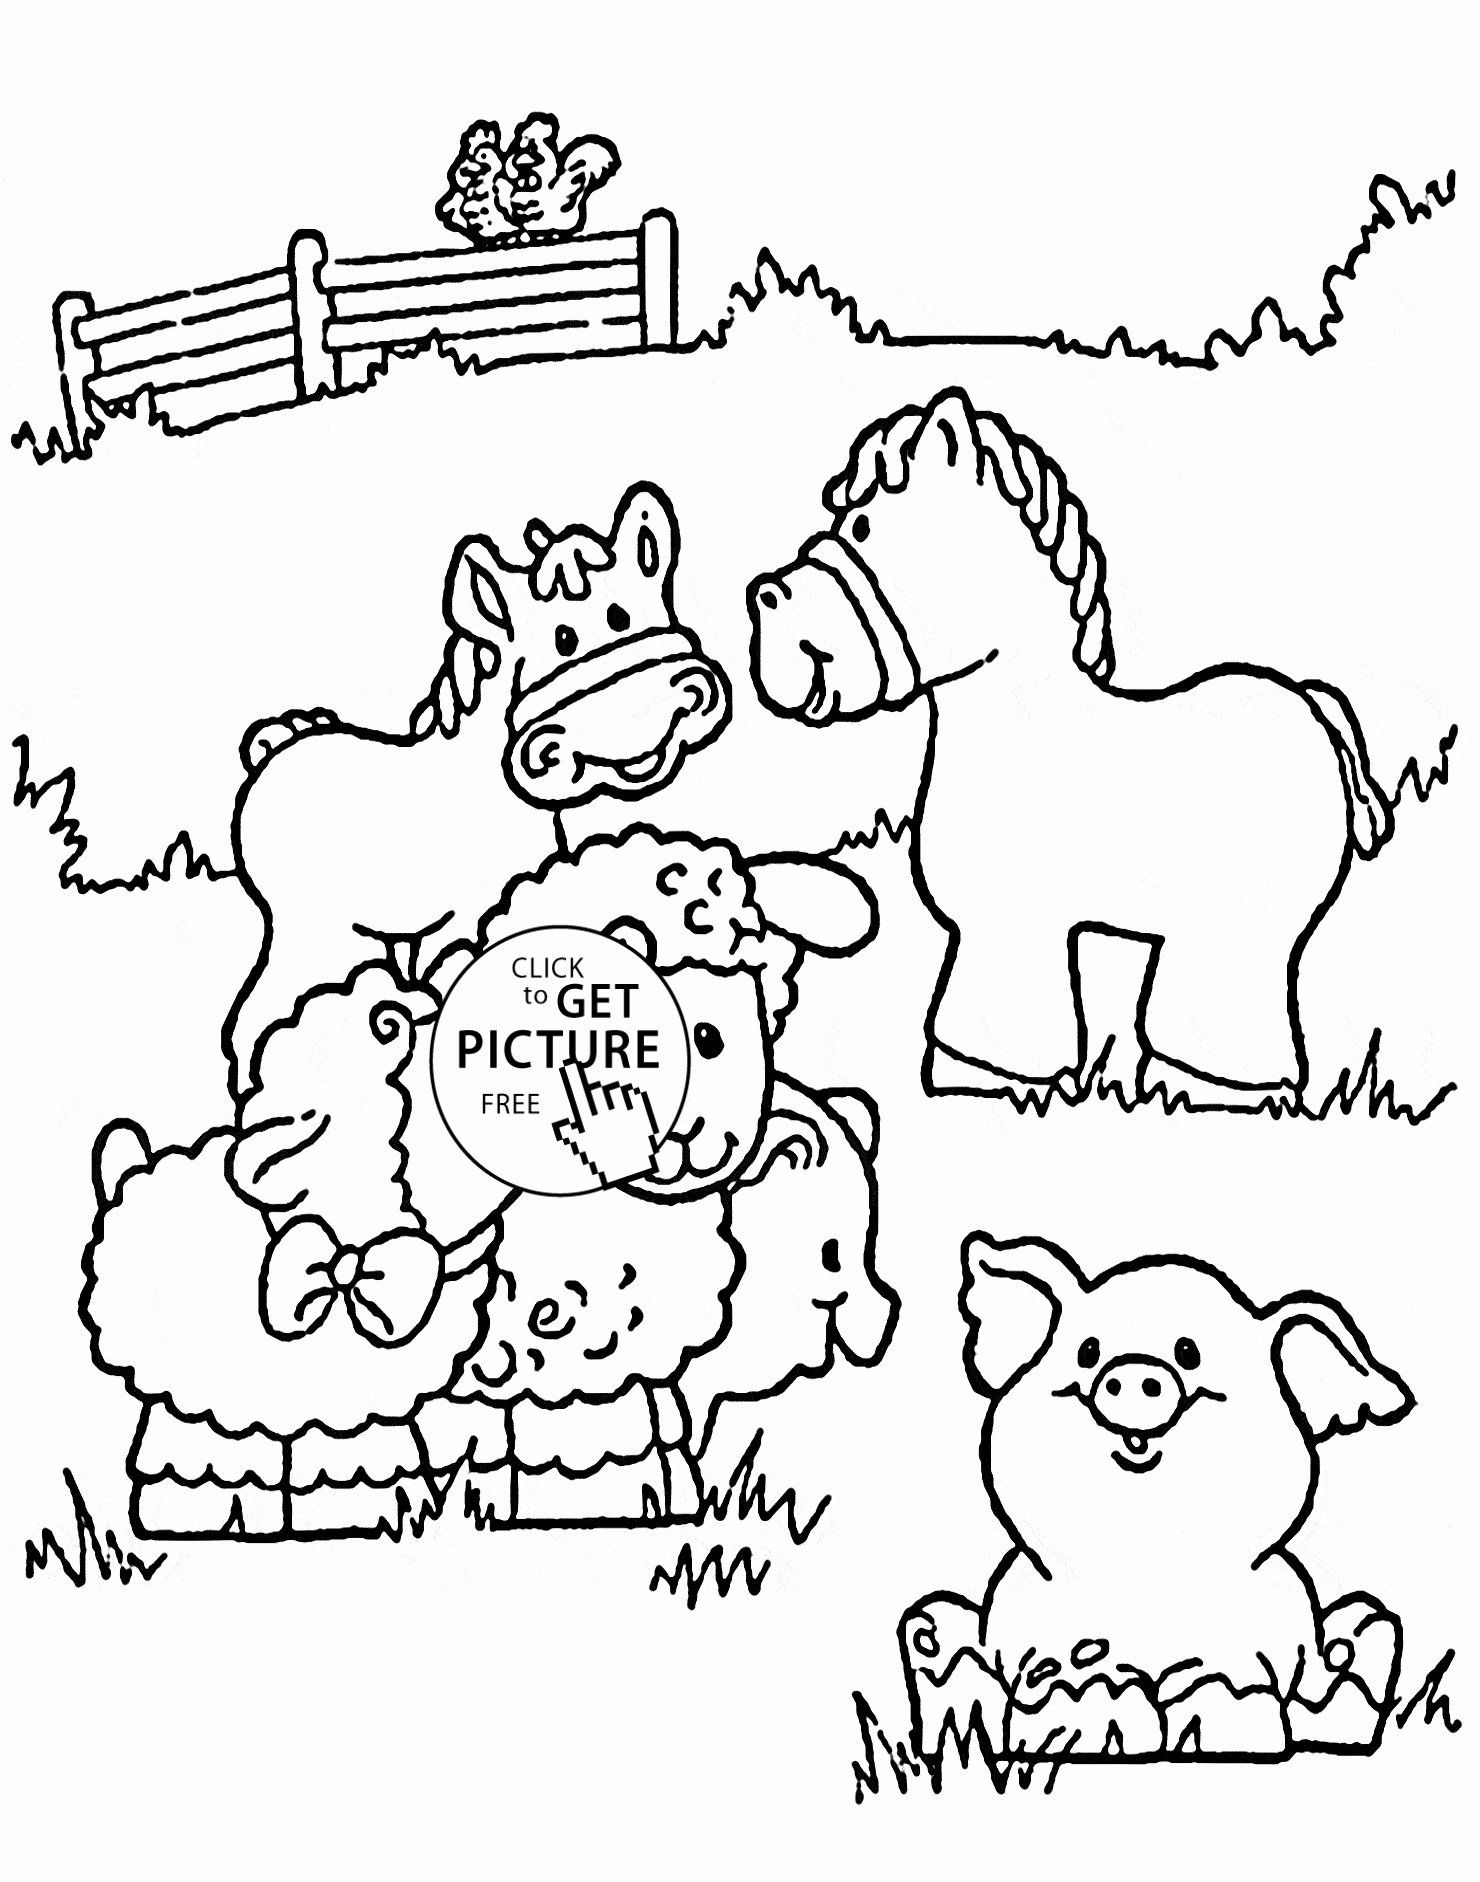 Pin On Example Games Coloring Pages